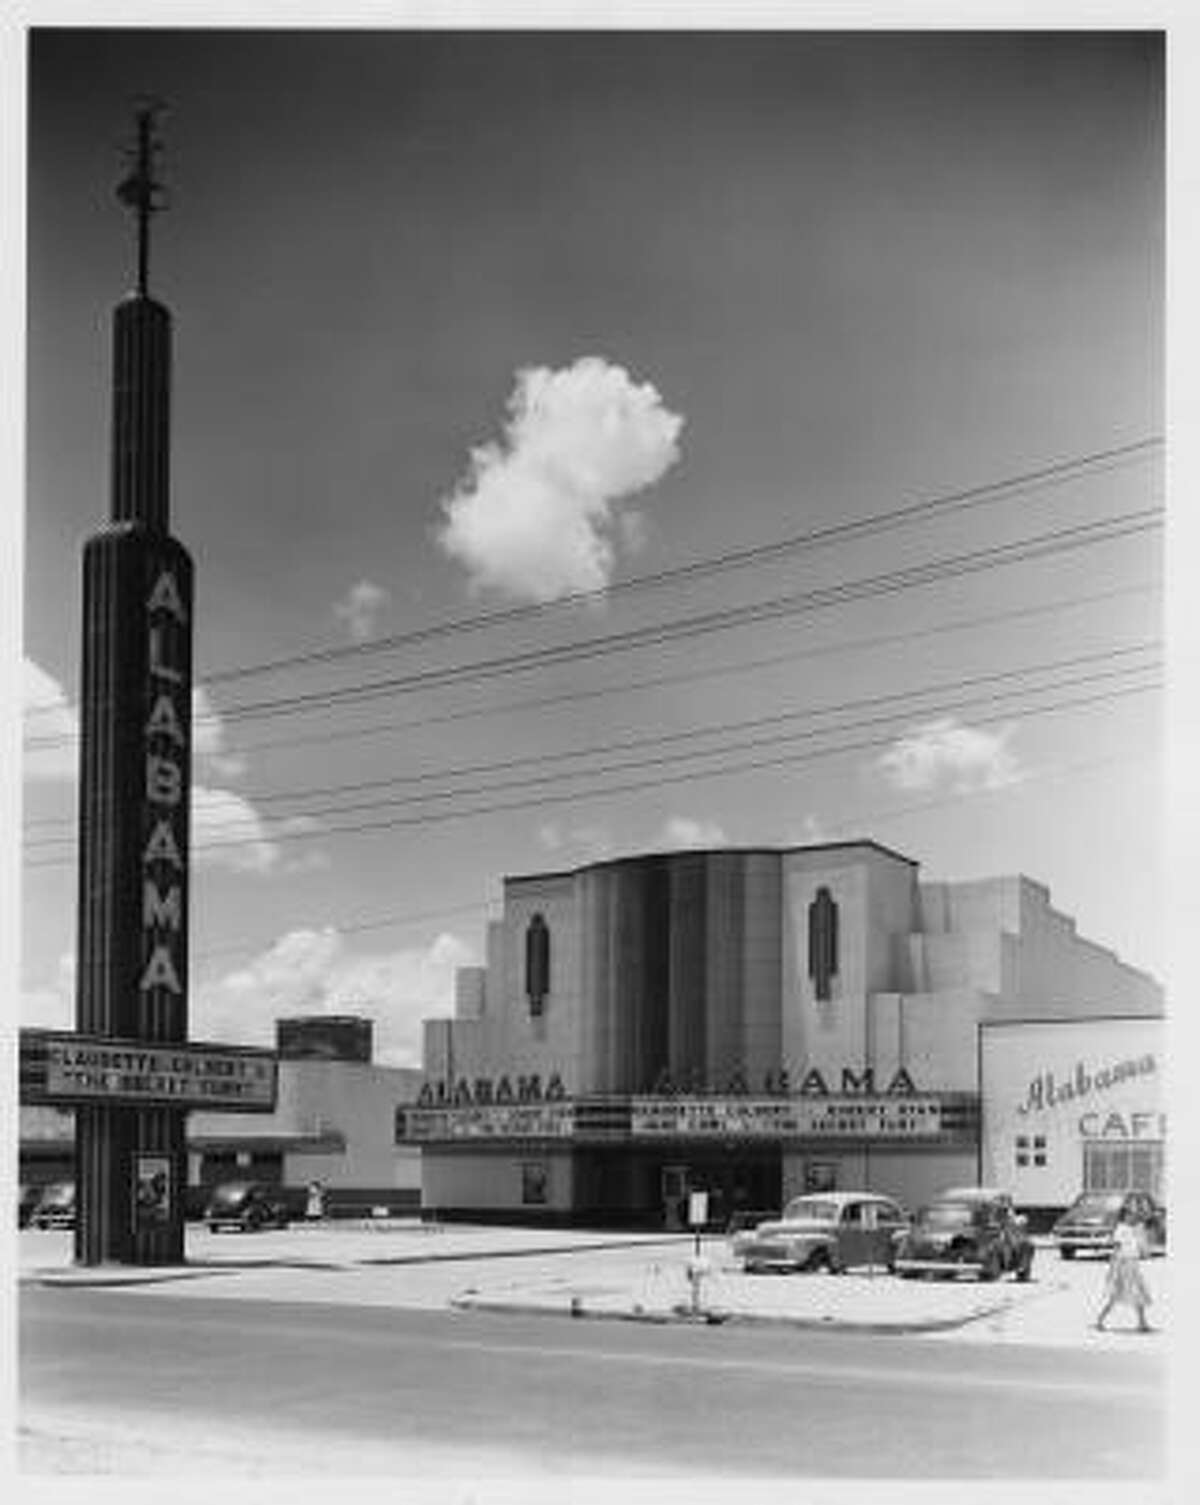 Dallas architect W. Scott Dunne designed the Alabama Theatre in the streamlined moderne style, the sleek final phase of Art Deco.